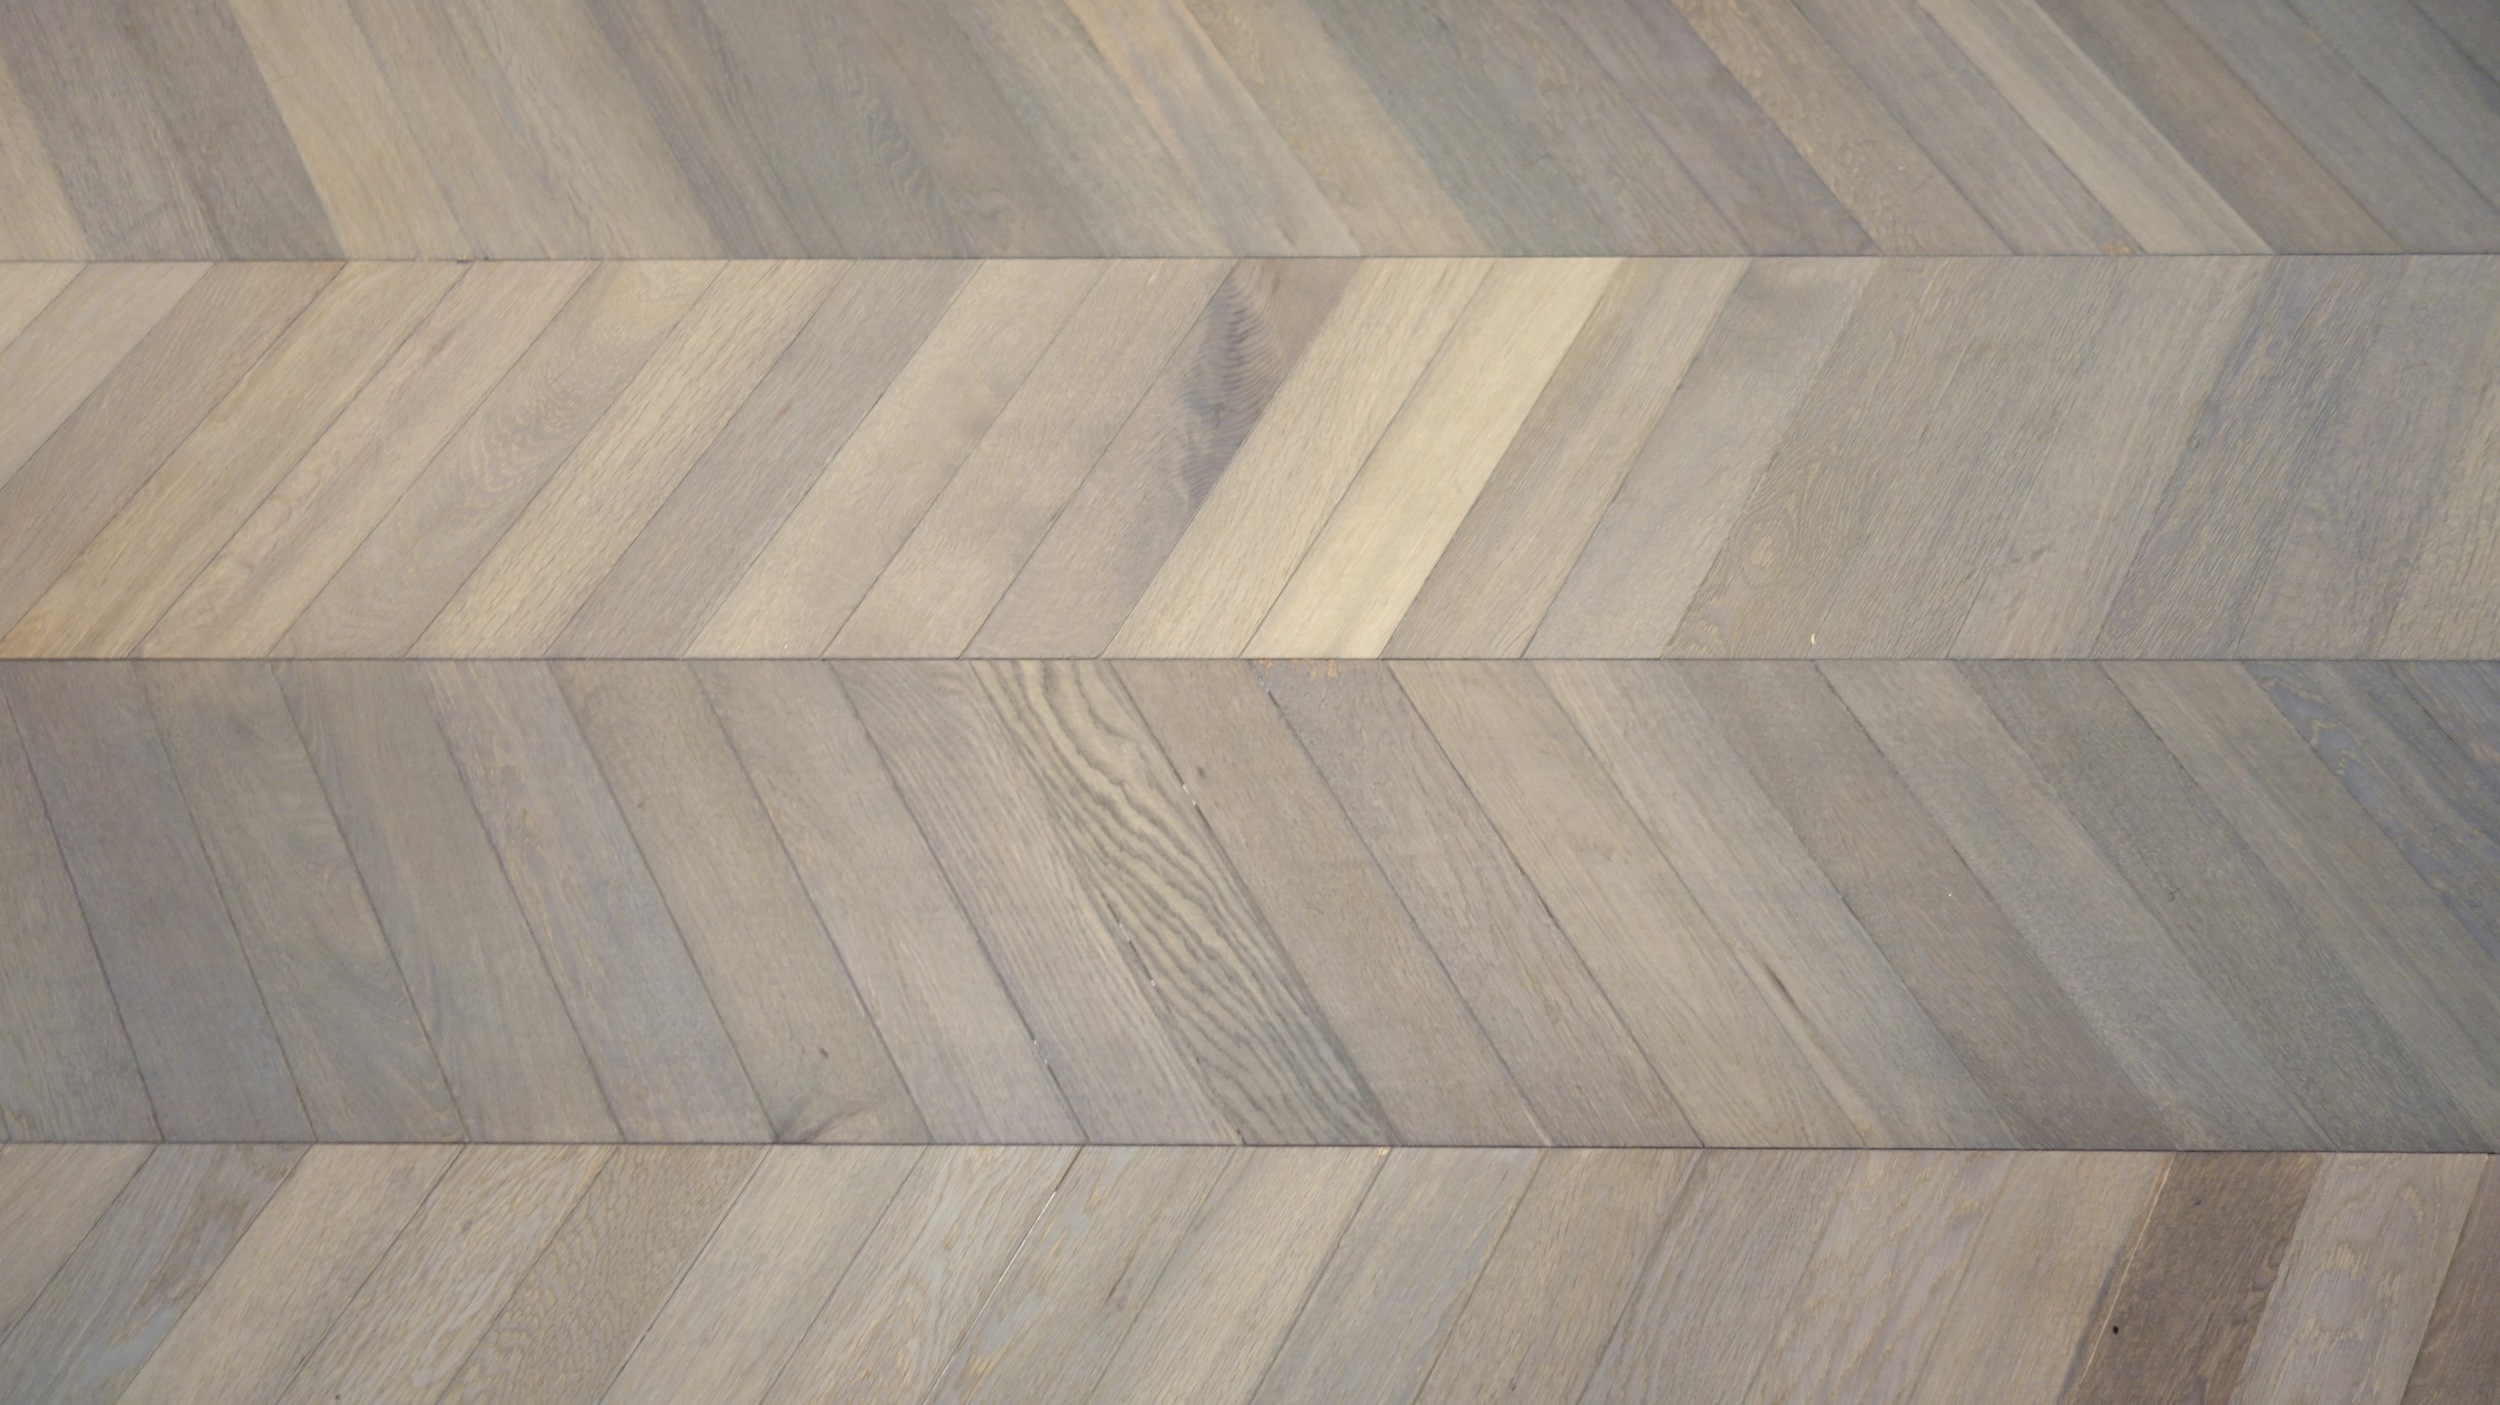 Chevron oak flooring from Kährs.